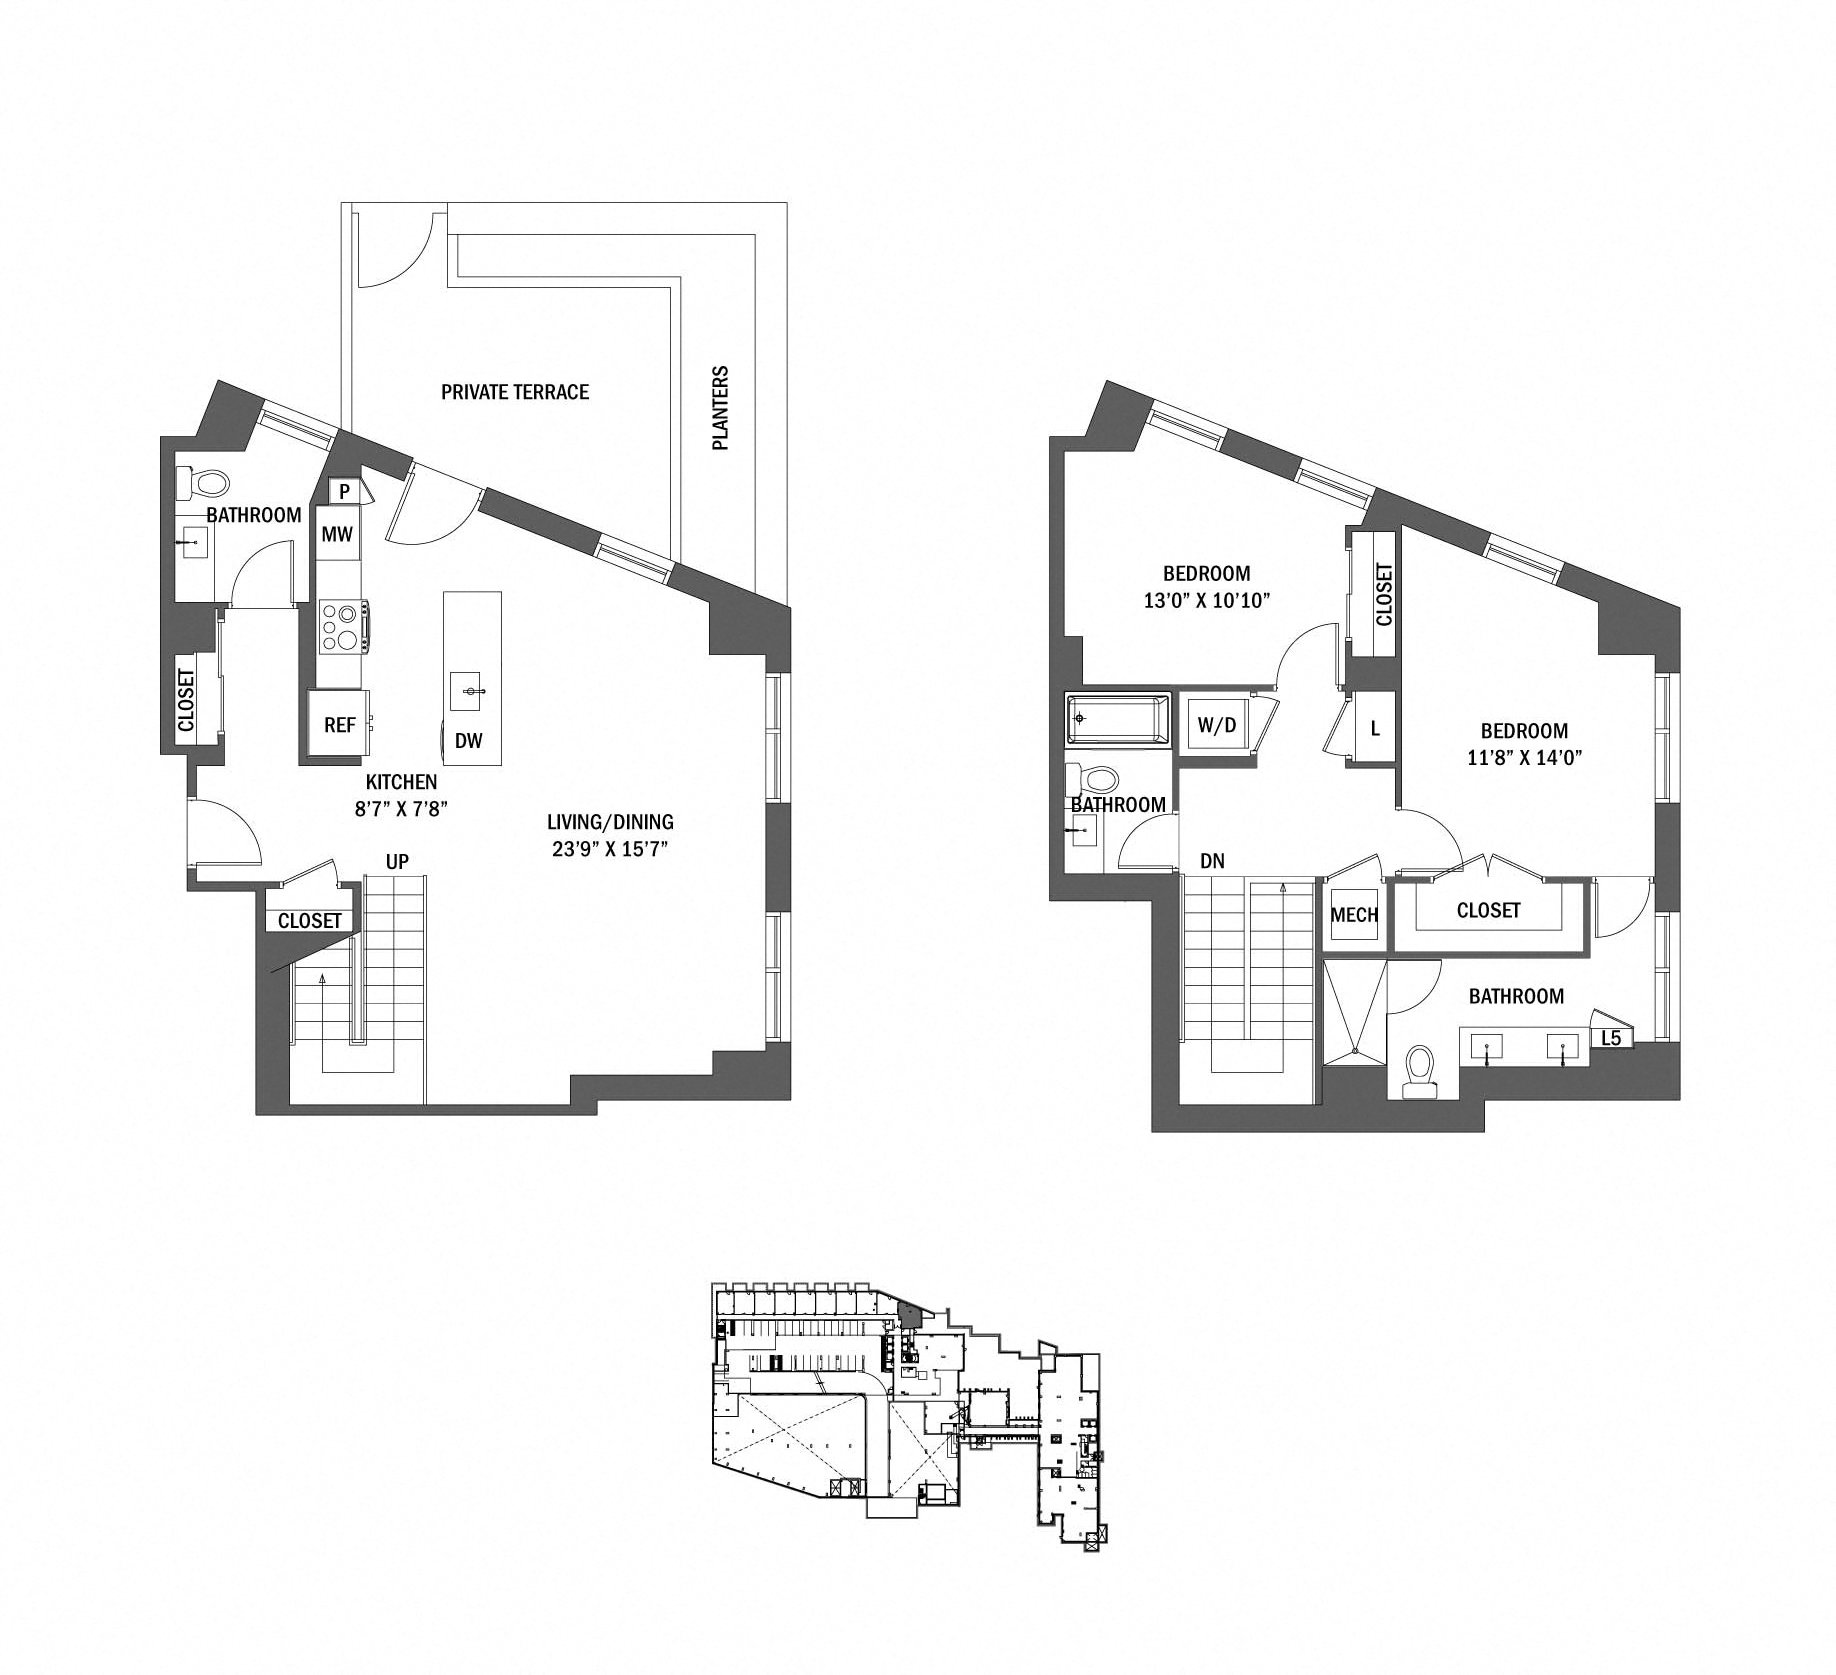 P0625338 n10 gp 2 floorplan